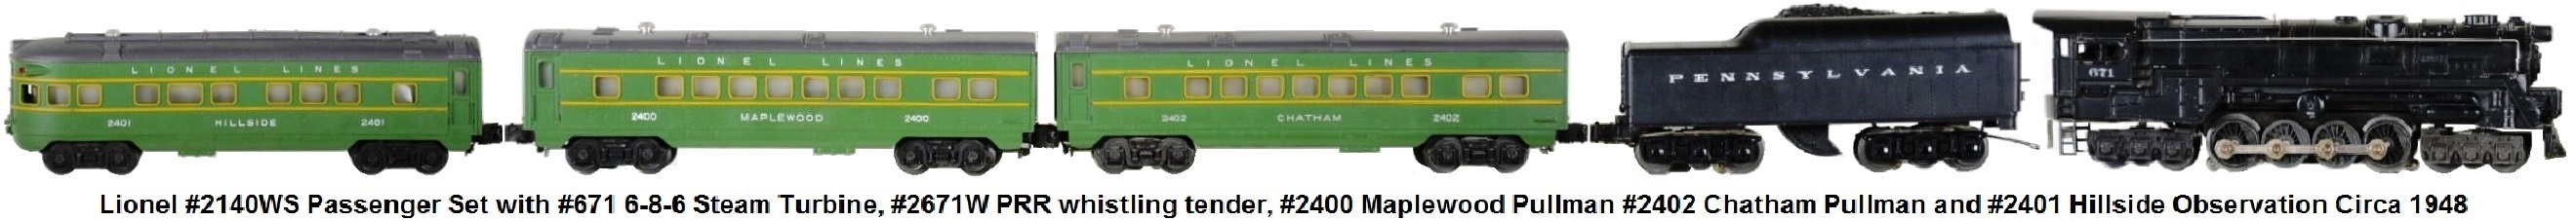 Lionel #2140WS Passenger Set with #671 6-8-6 Steam Turbine, #2671W PRR whistling tender #2400 Maplewood Pullman, #2402 Chatham Pullman and #2401 Hillside observation made 1948